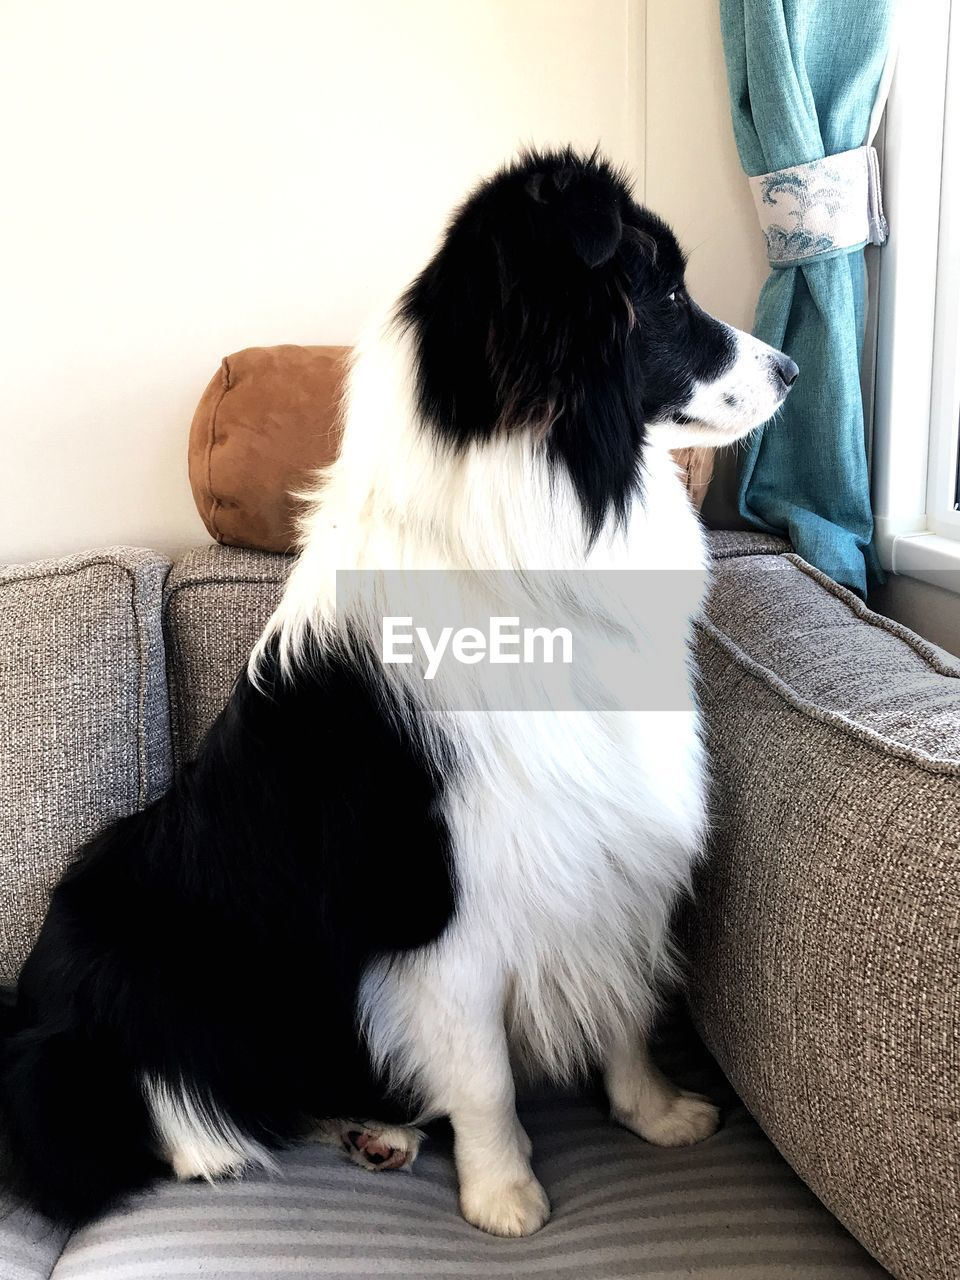 domestic, one animal, pets, domestic animals, animal themes, mammal, animal, vertebrate, sofa, indoors, furniture, home interior, canine, sitting, dog, relaxation, no people, day, living room, pillow